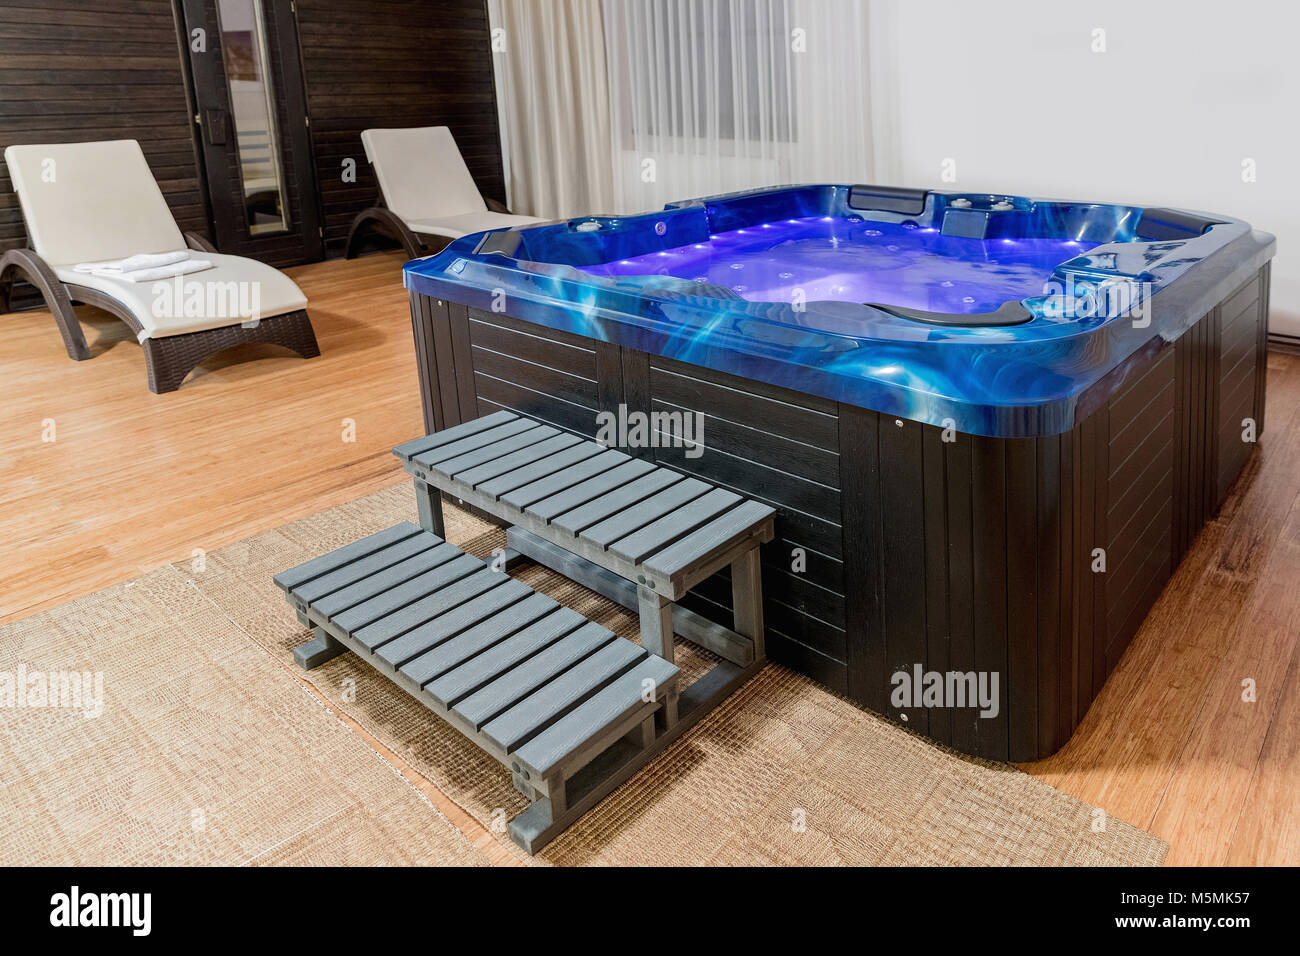 Hot Tub Outside Stock Photos & Hot Tub Outside Stock Images - Page 3 ...